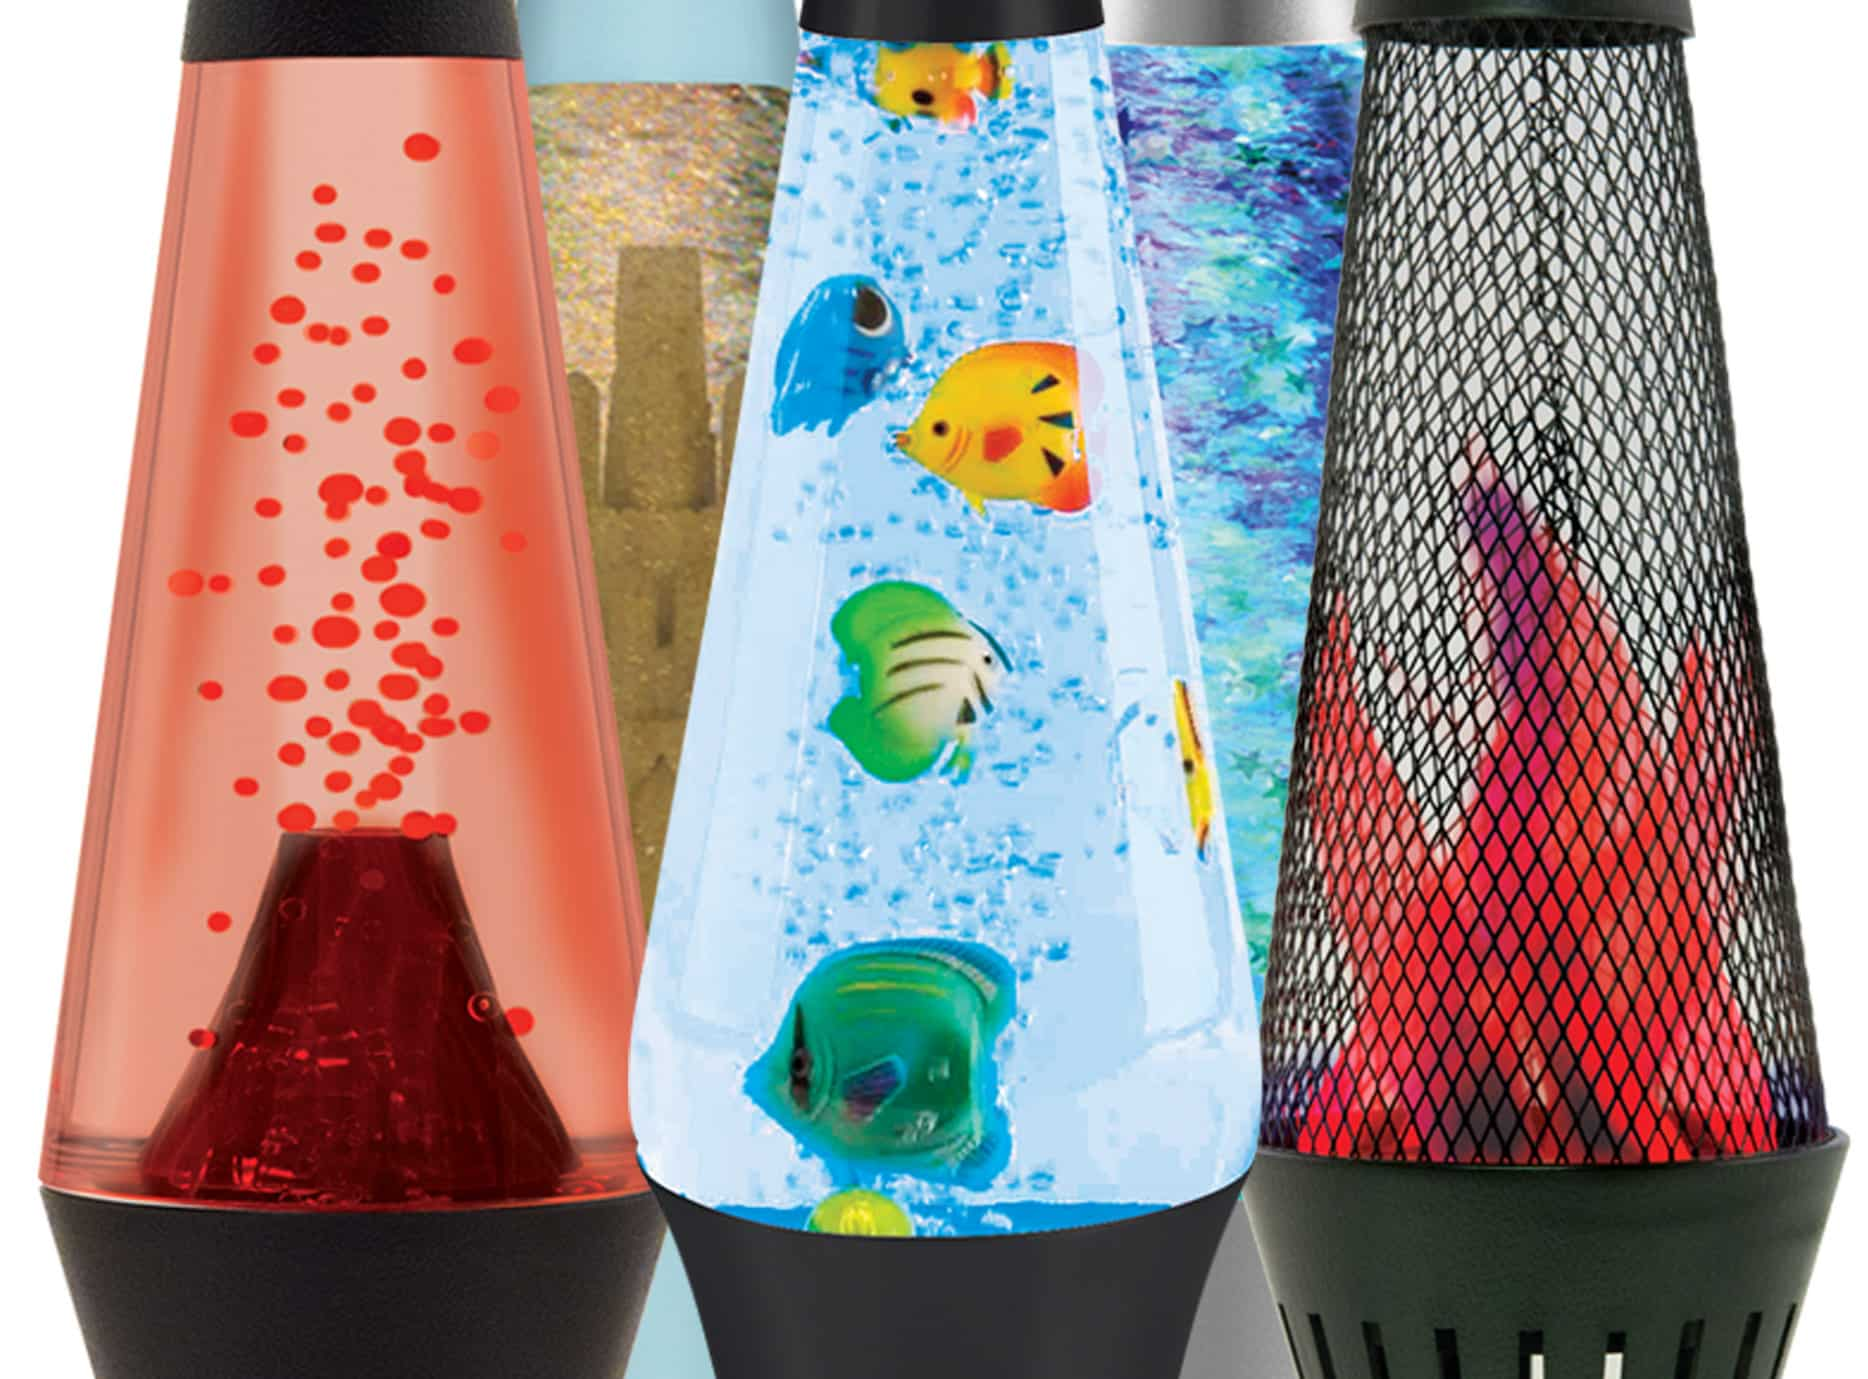 Lava lamp room - Without The Heat That You Find In A Regular Lava Lamp These Are Perfect For Smaller Children Enjoy These Fun Versions Of The Timeless Lava Lamp